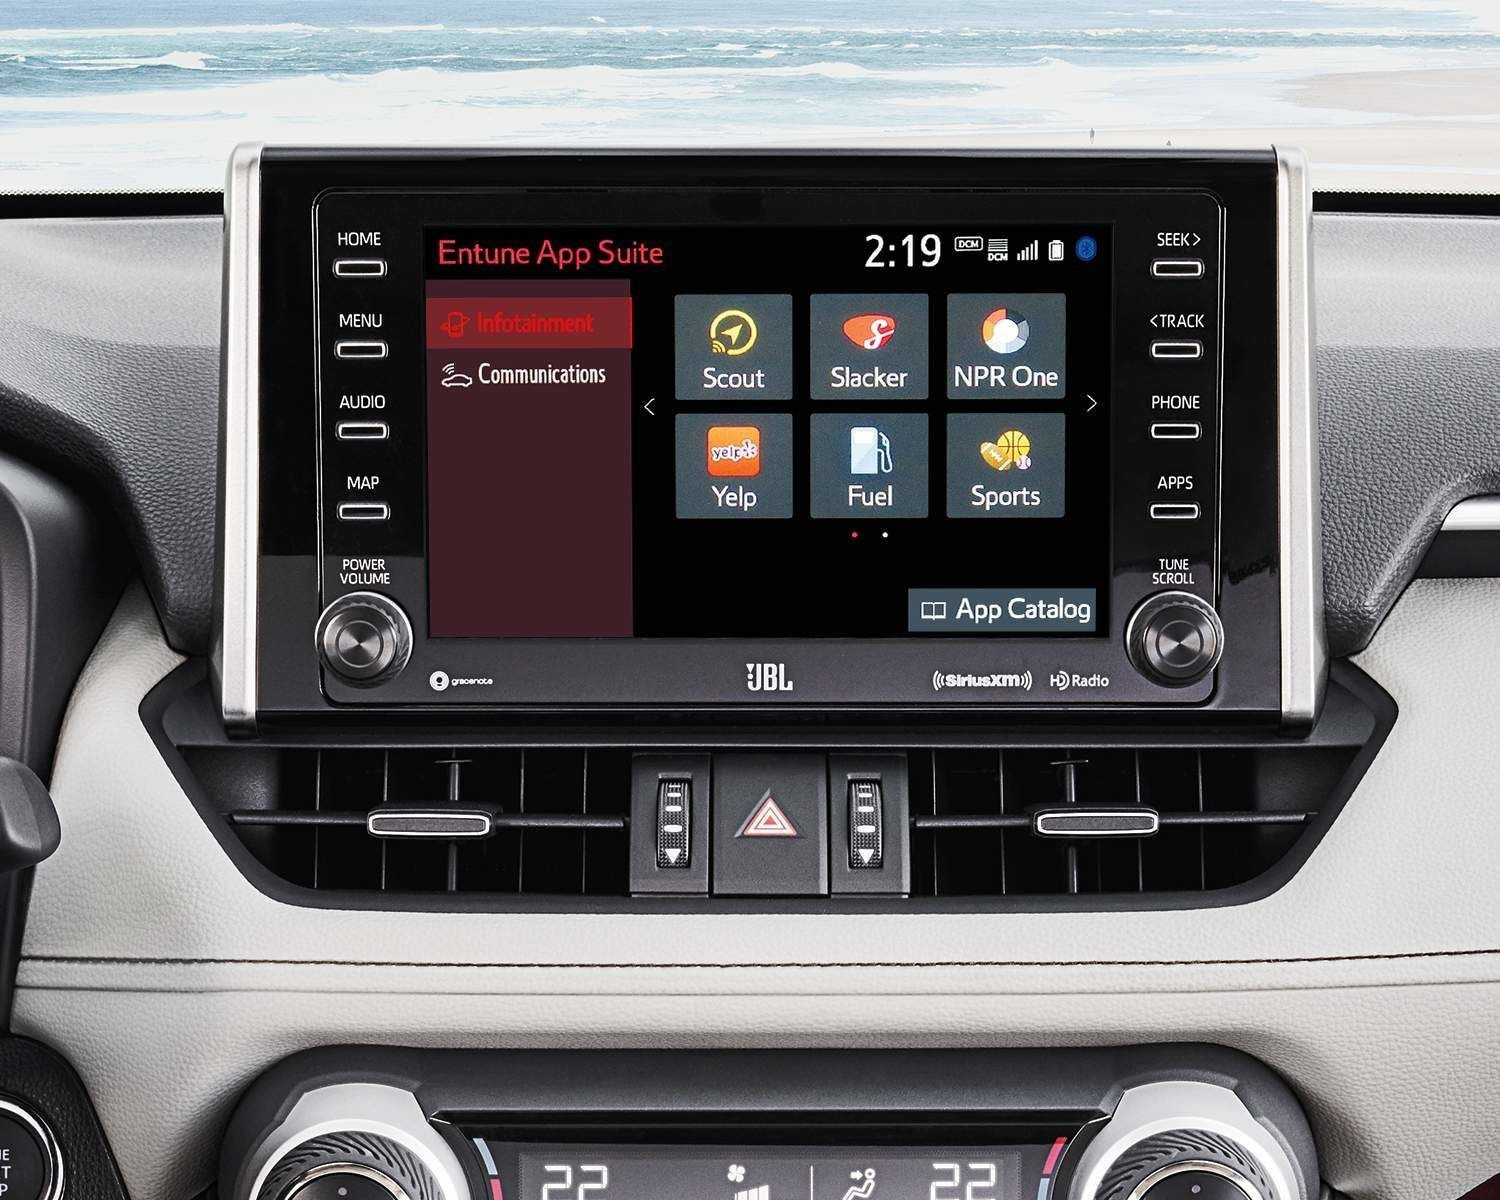 RAV4 Entune Screen